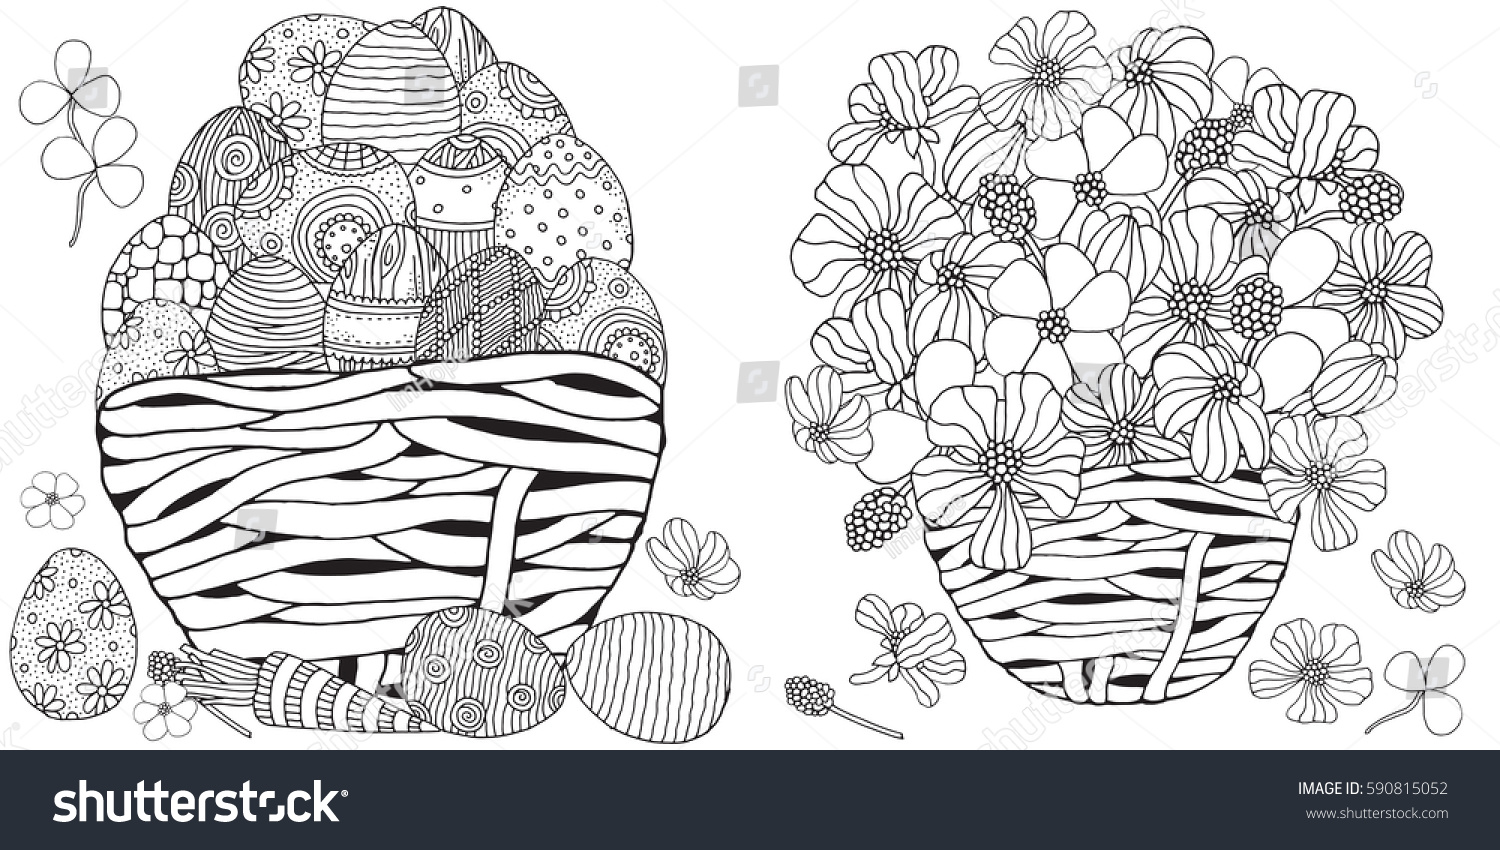 set anti stress coloring book pages stock vector 590815052